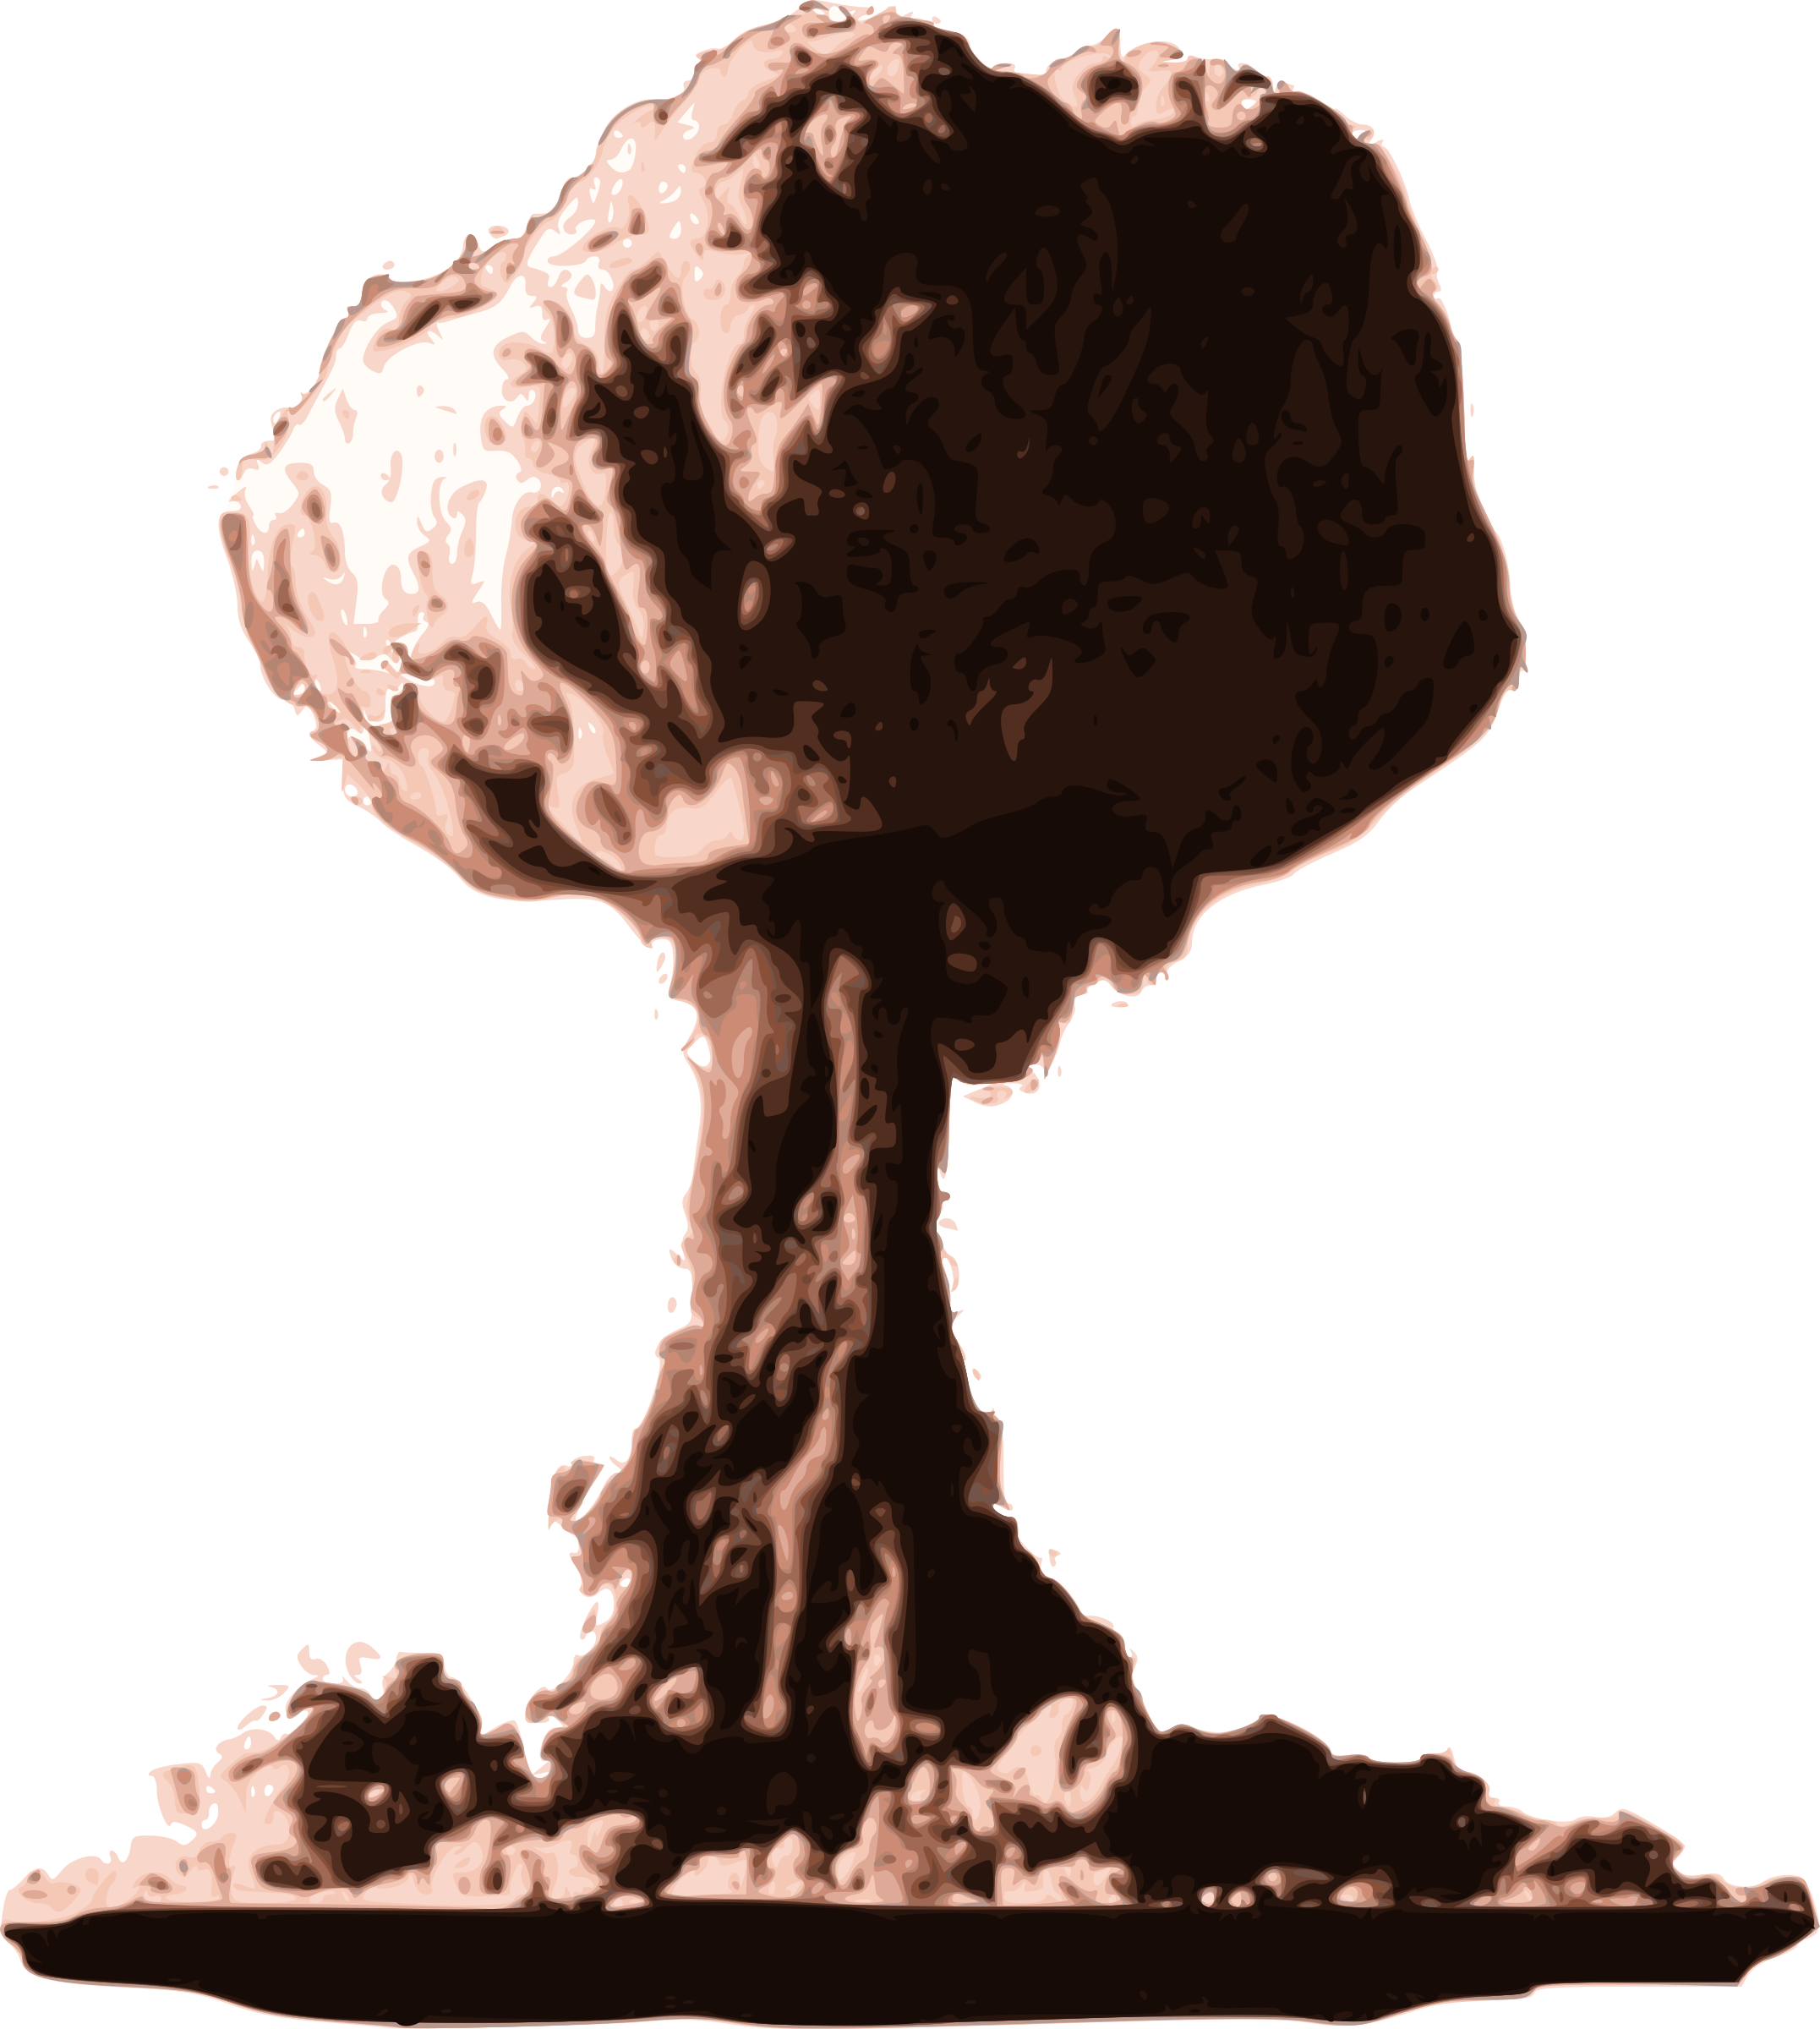 Nuclear Explosion PNG - 70771